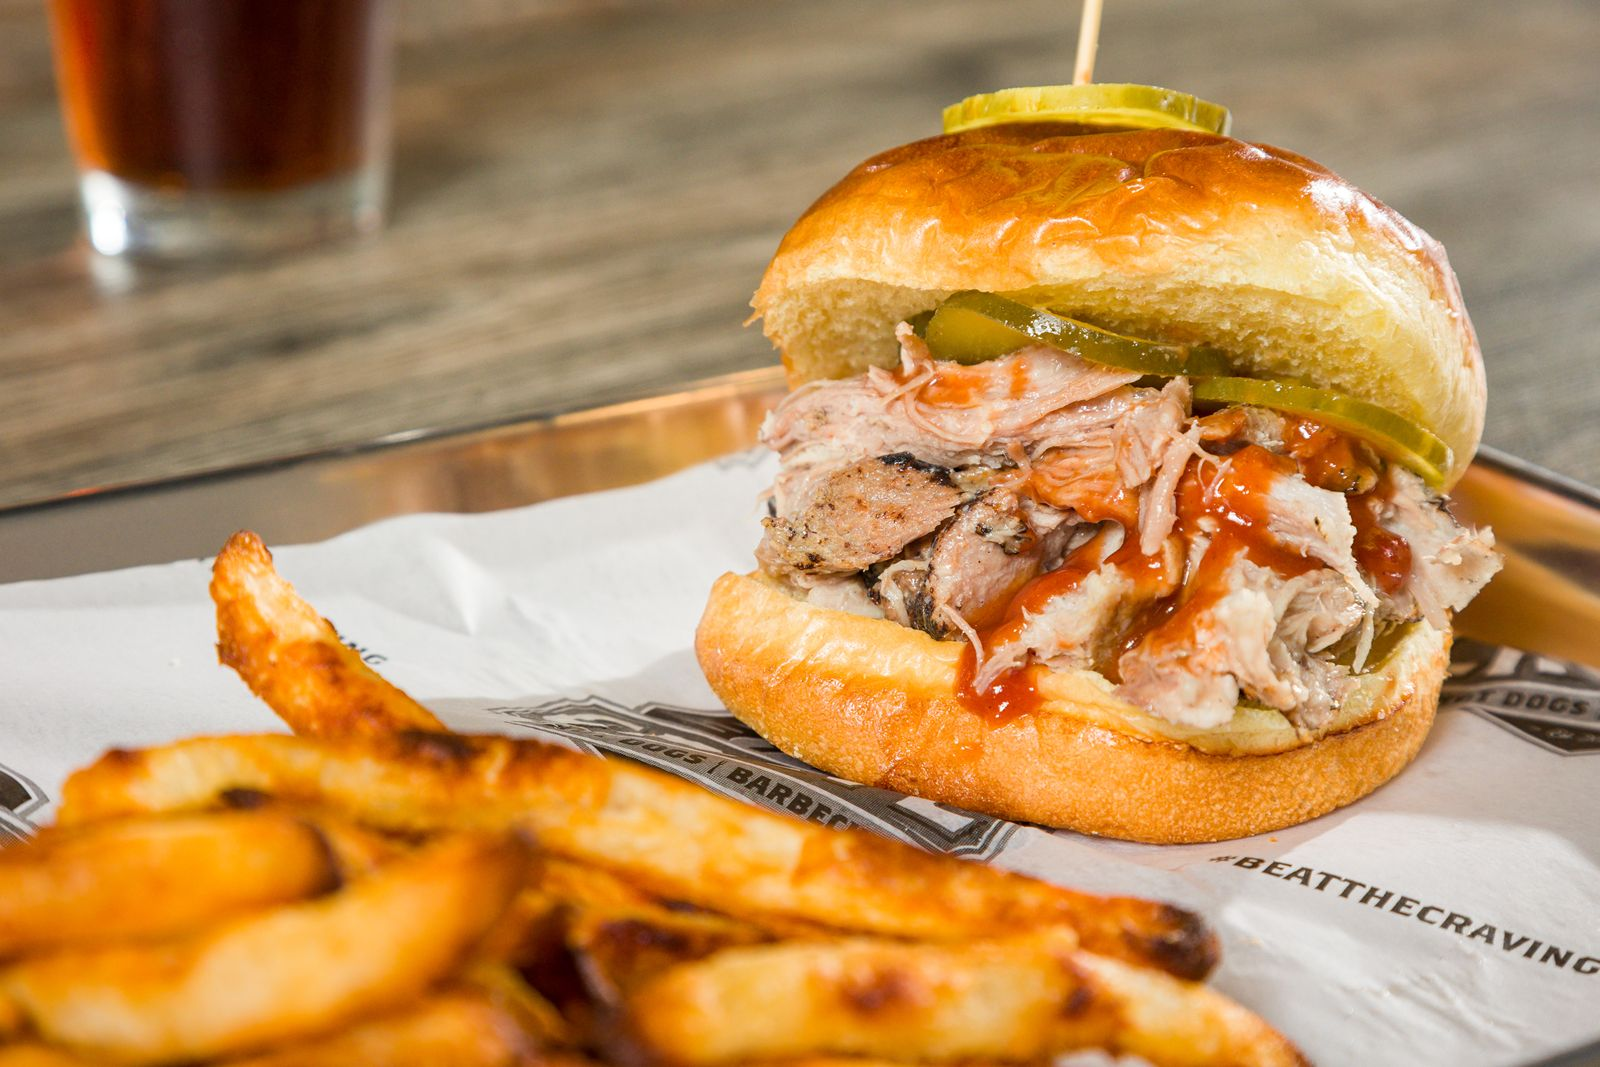 Crave Hot Dogs and BBQ Enters Shreveport, LA